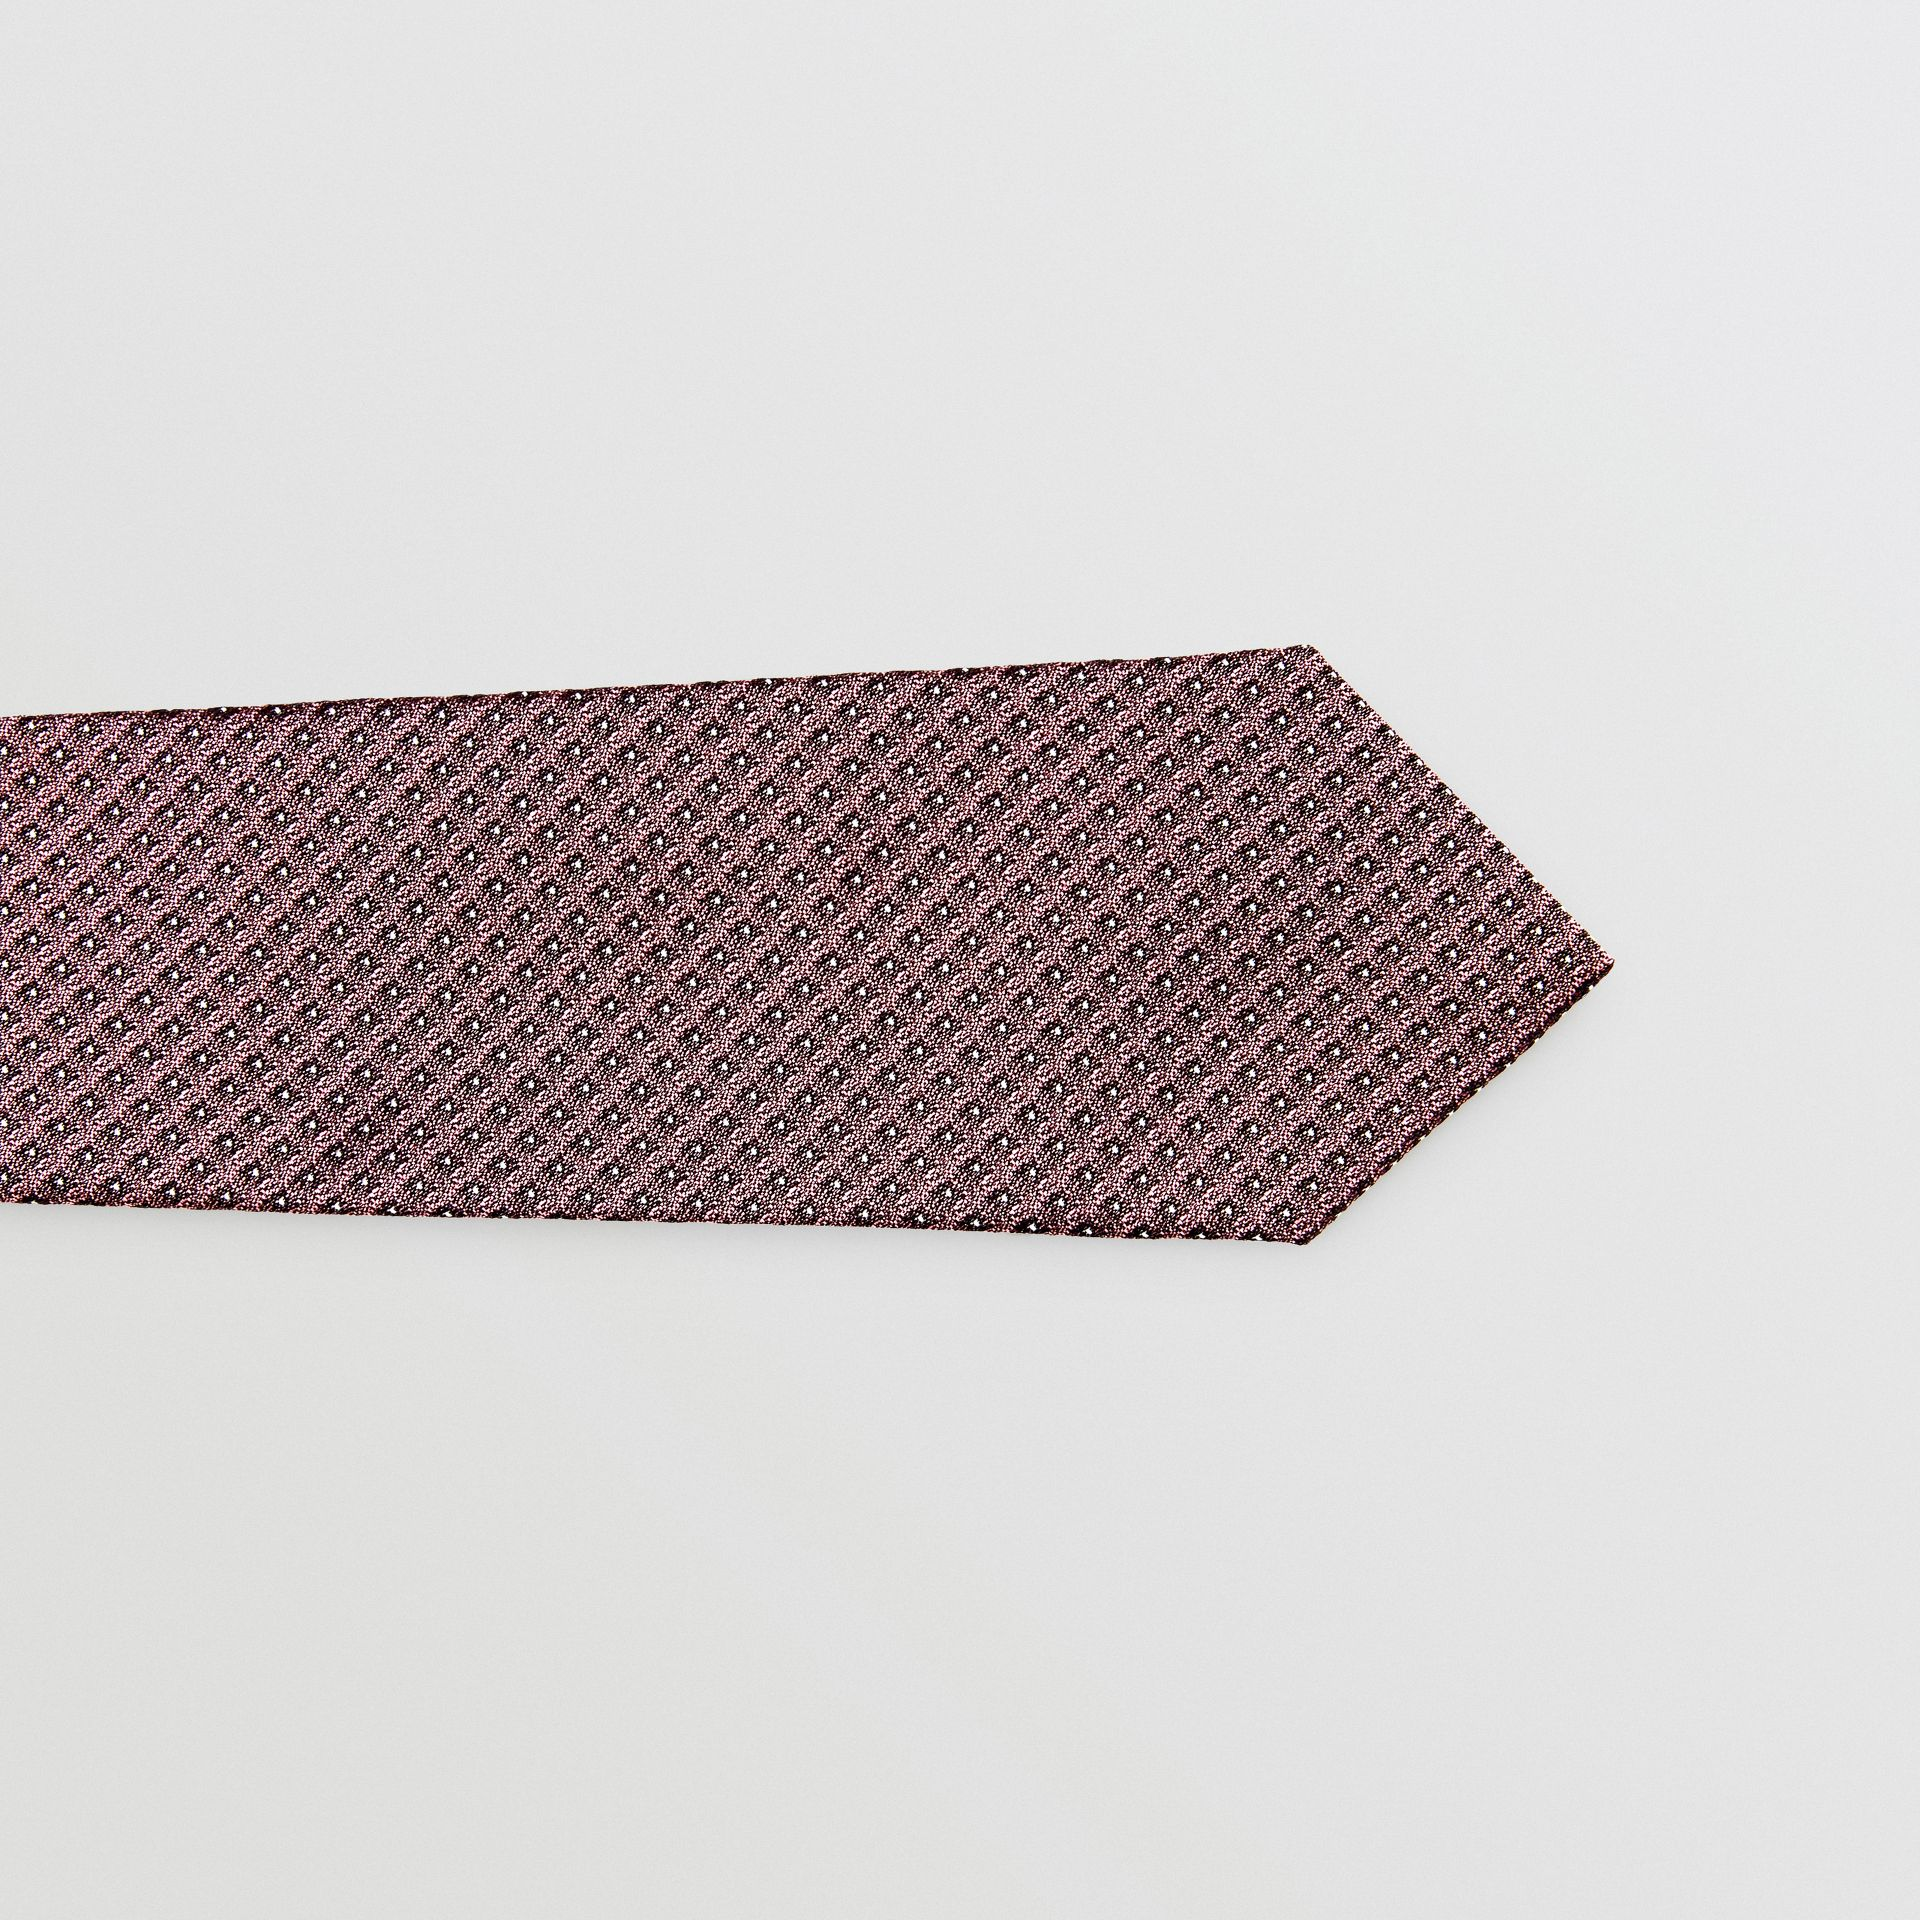 Classic Cut Micro Dot Silk Jacquard Tie in Garnet Pink - Men | Burberry Canada - gallery image 1